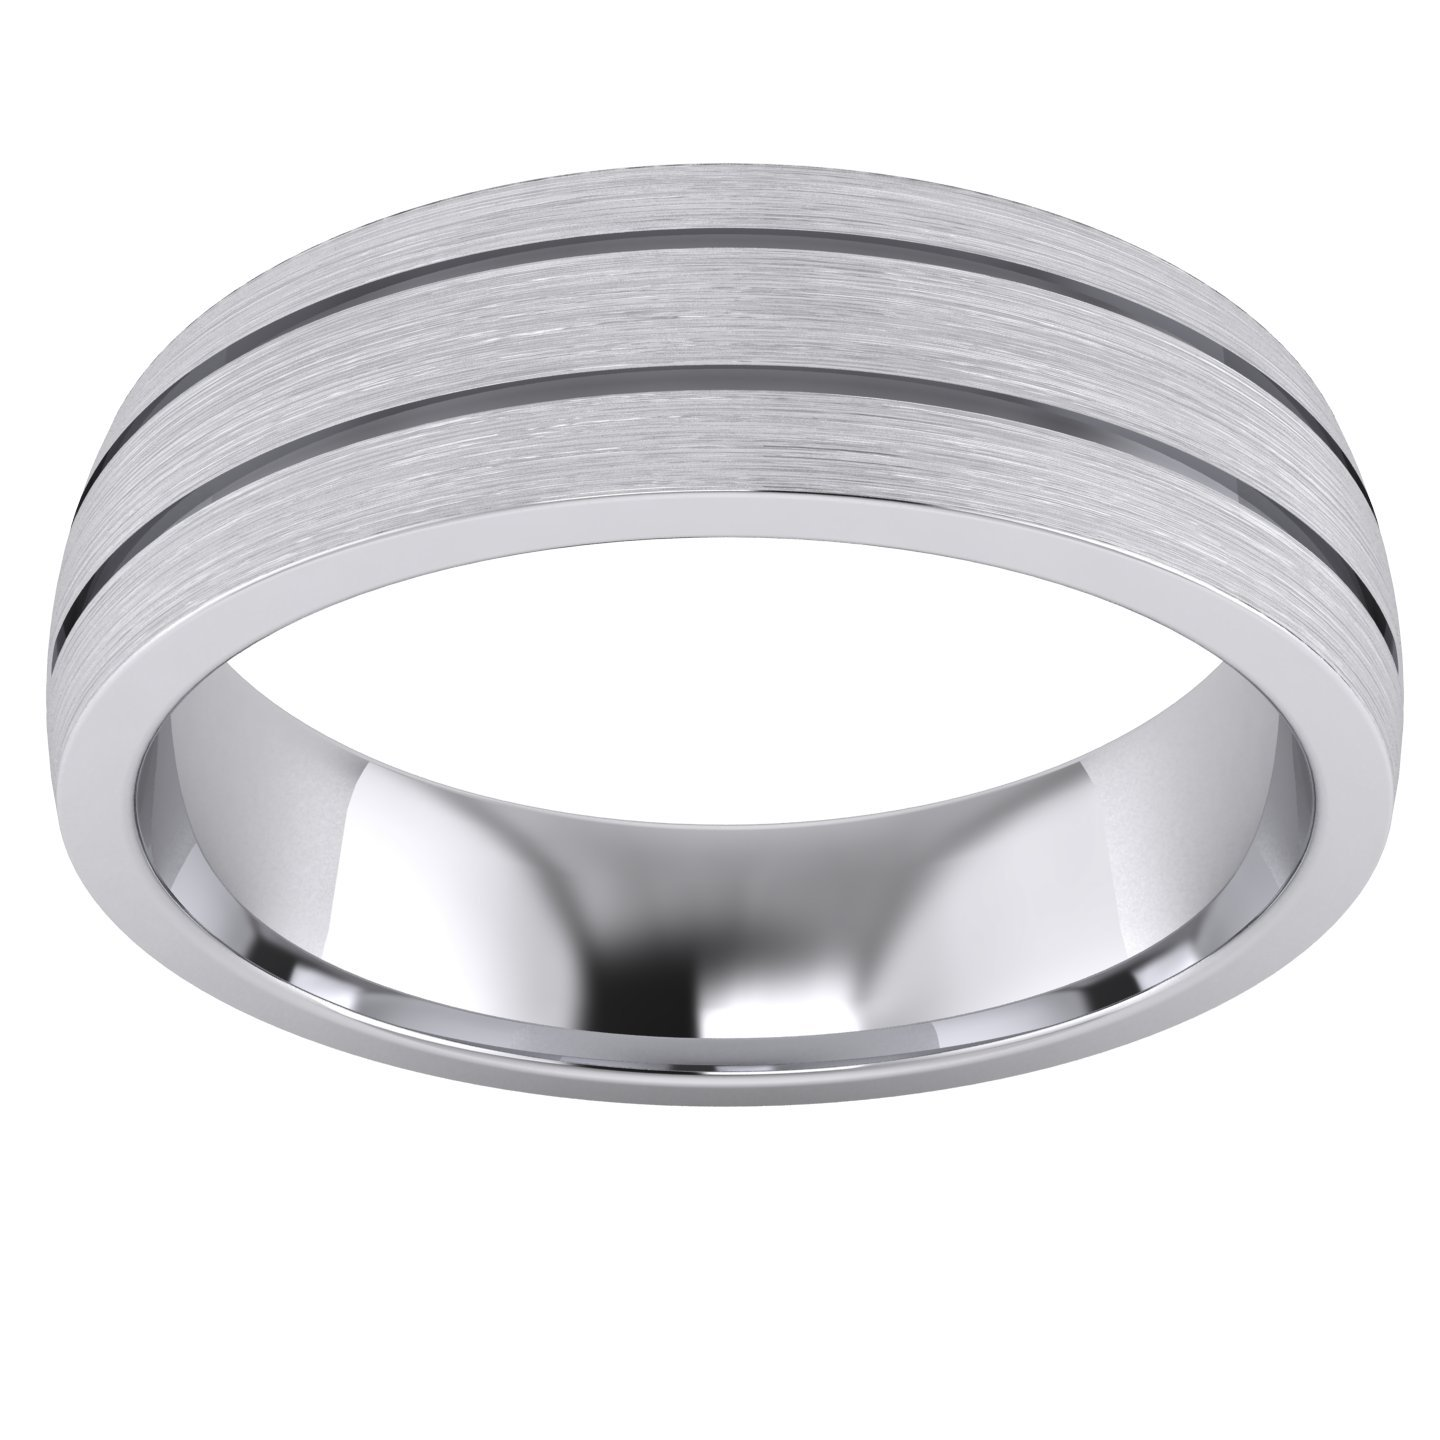 Heavy Solid Sterling Silver 6mm Unisex Wedding Band Comfort Fit Domed Ring Two Grooves Brushed Surface (11.5) by LANDA JEWEL (Image #2)